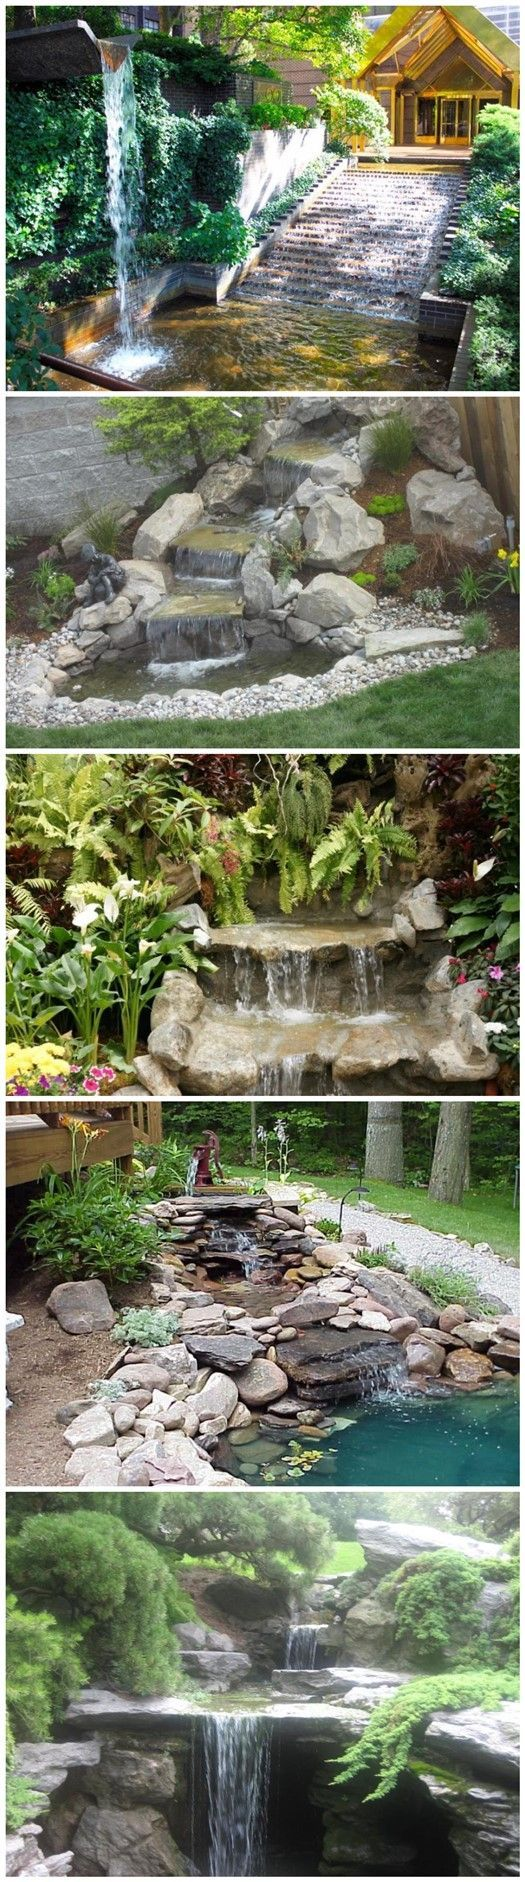 how to build a garden waterfall pond 3 flowers and landscaping